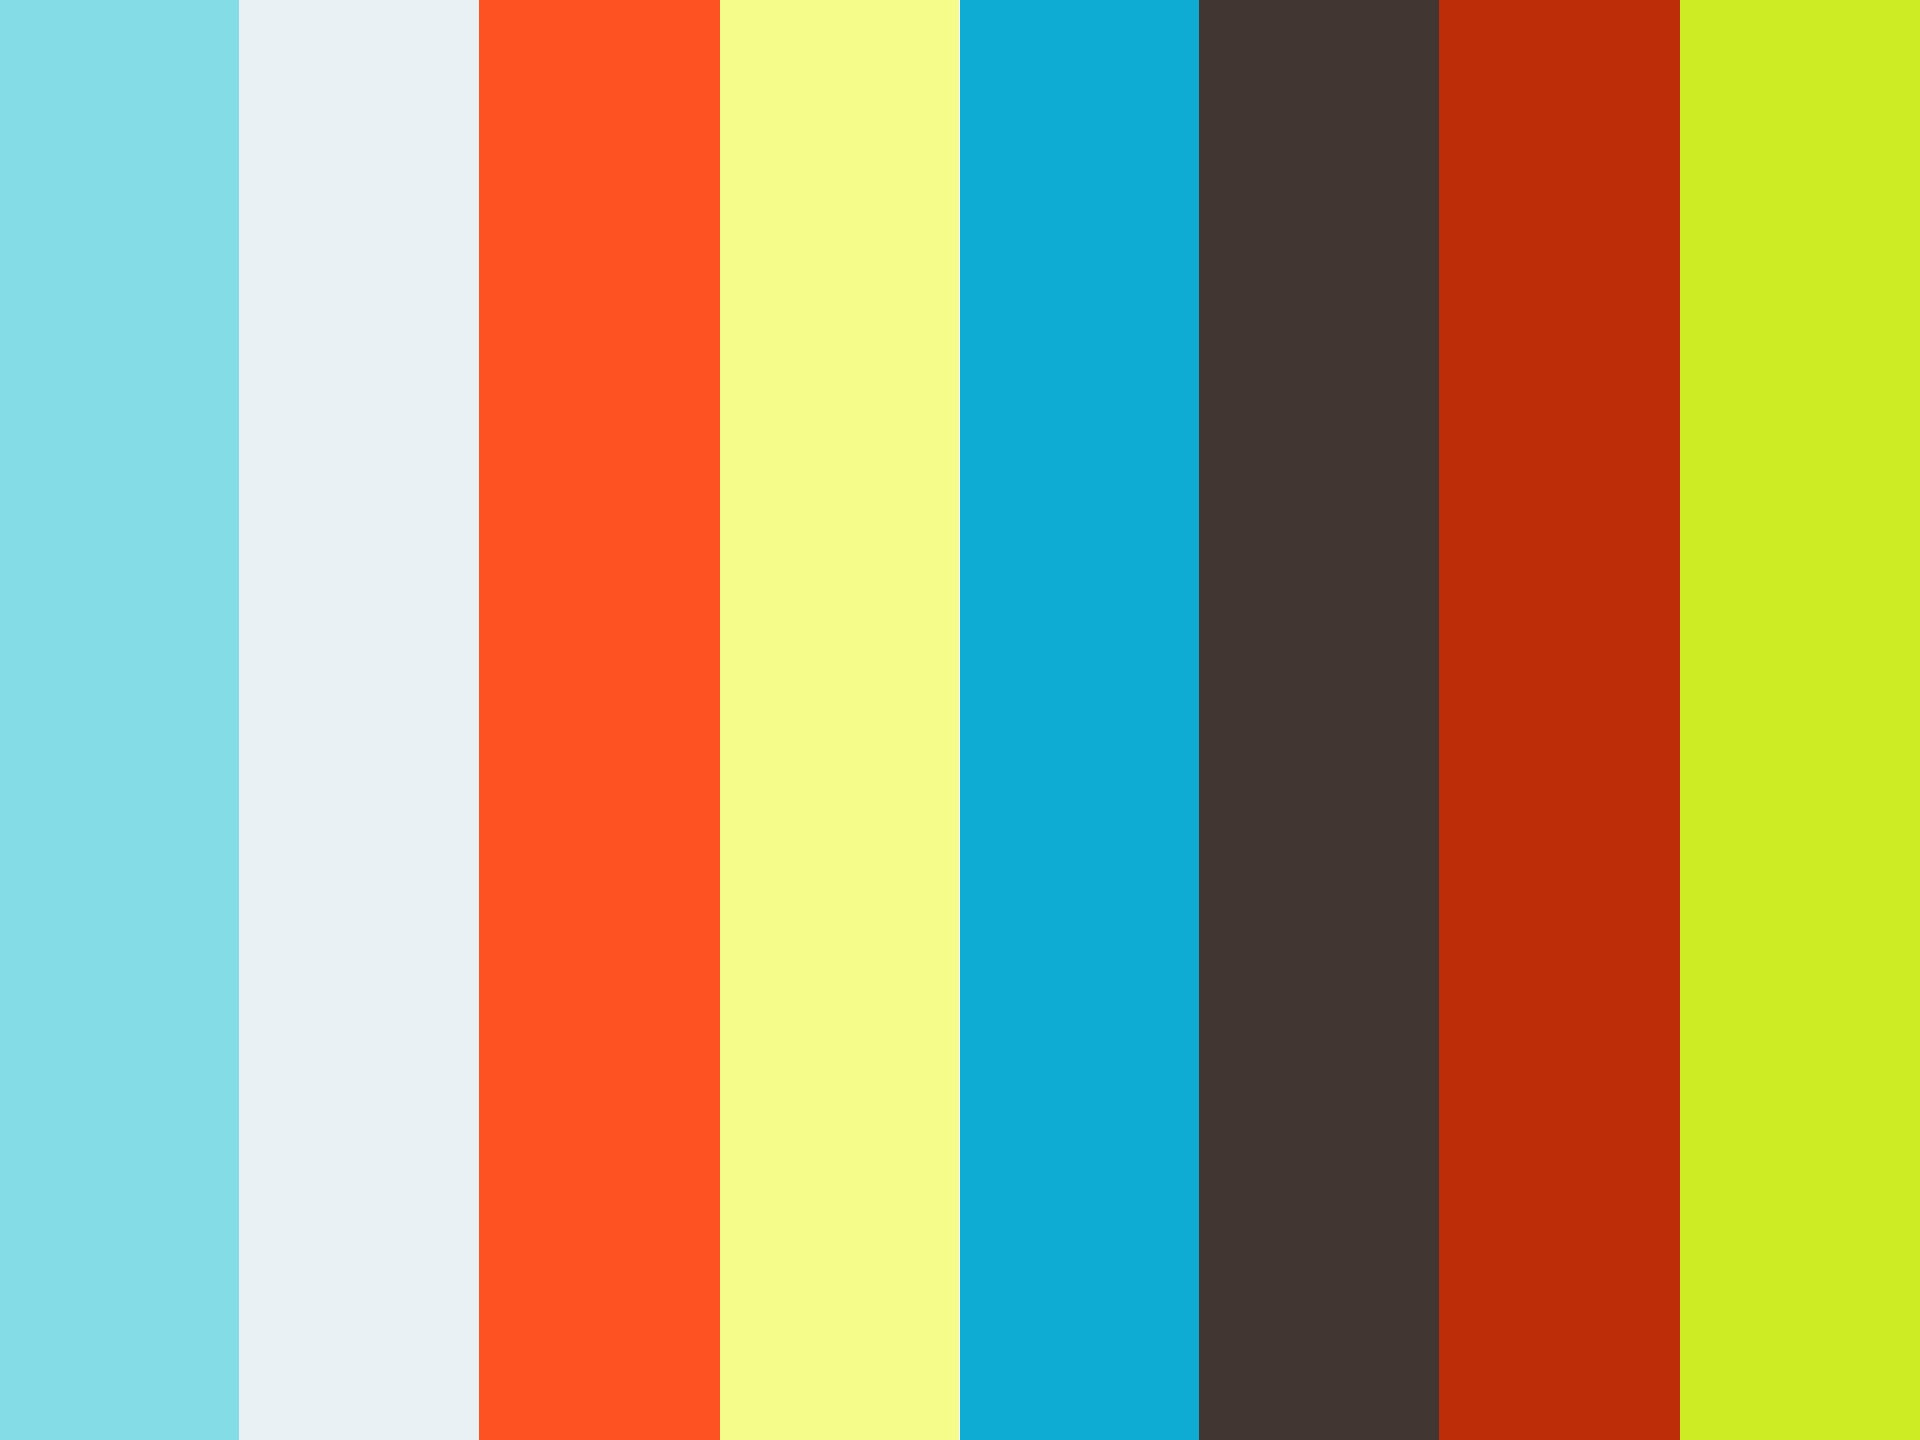 Rectovaginal and Rectourethral Fistula Core Subjects 2010